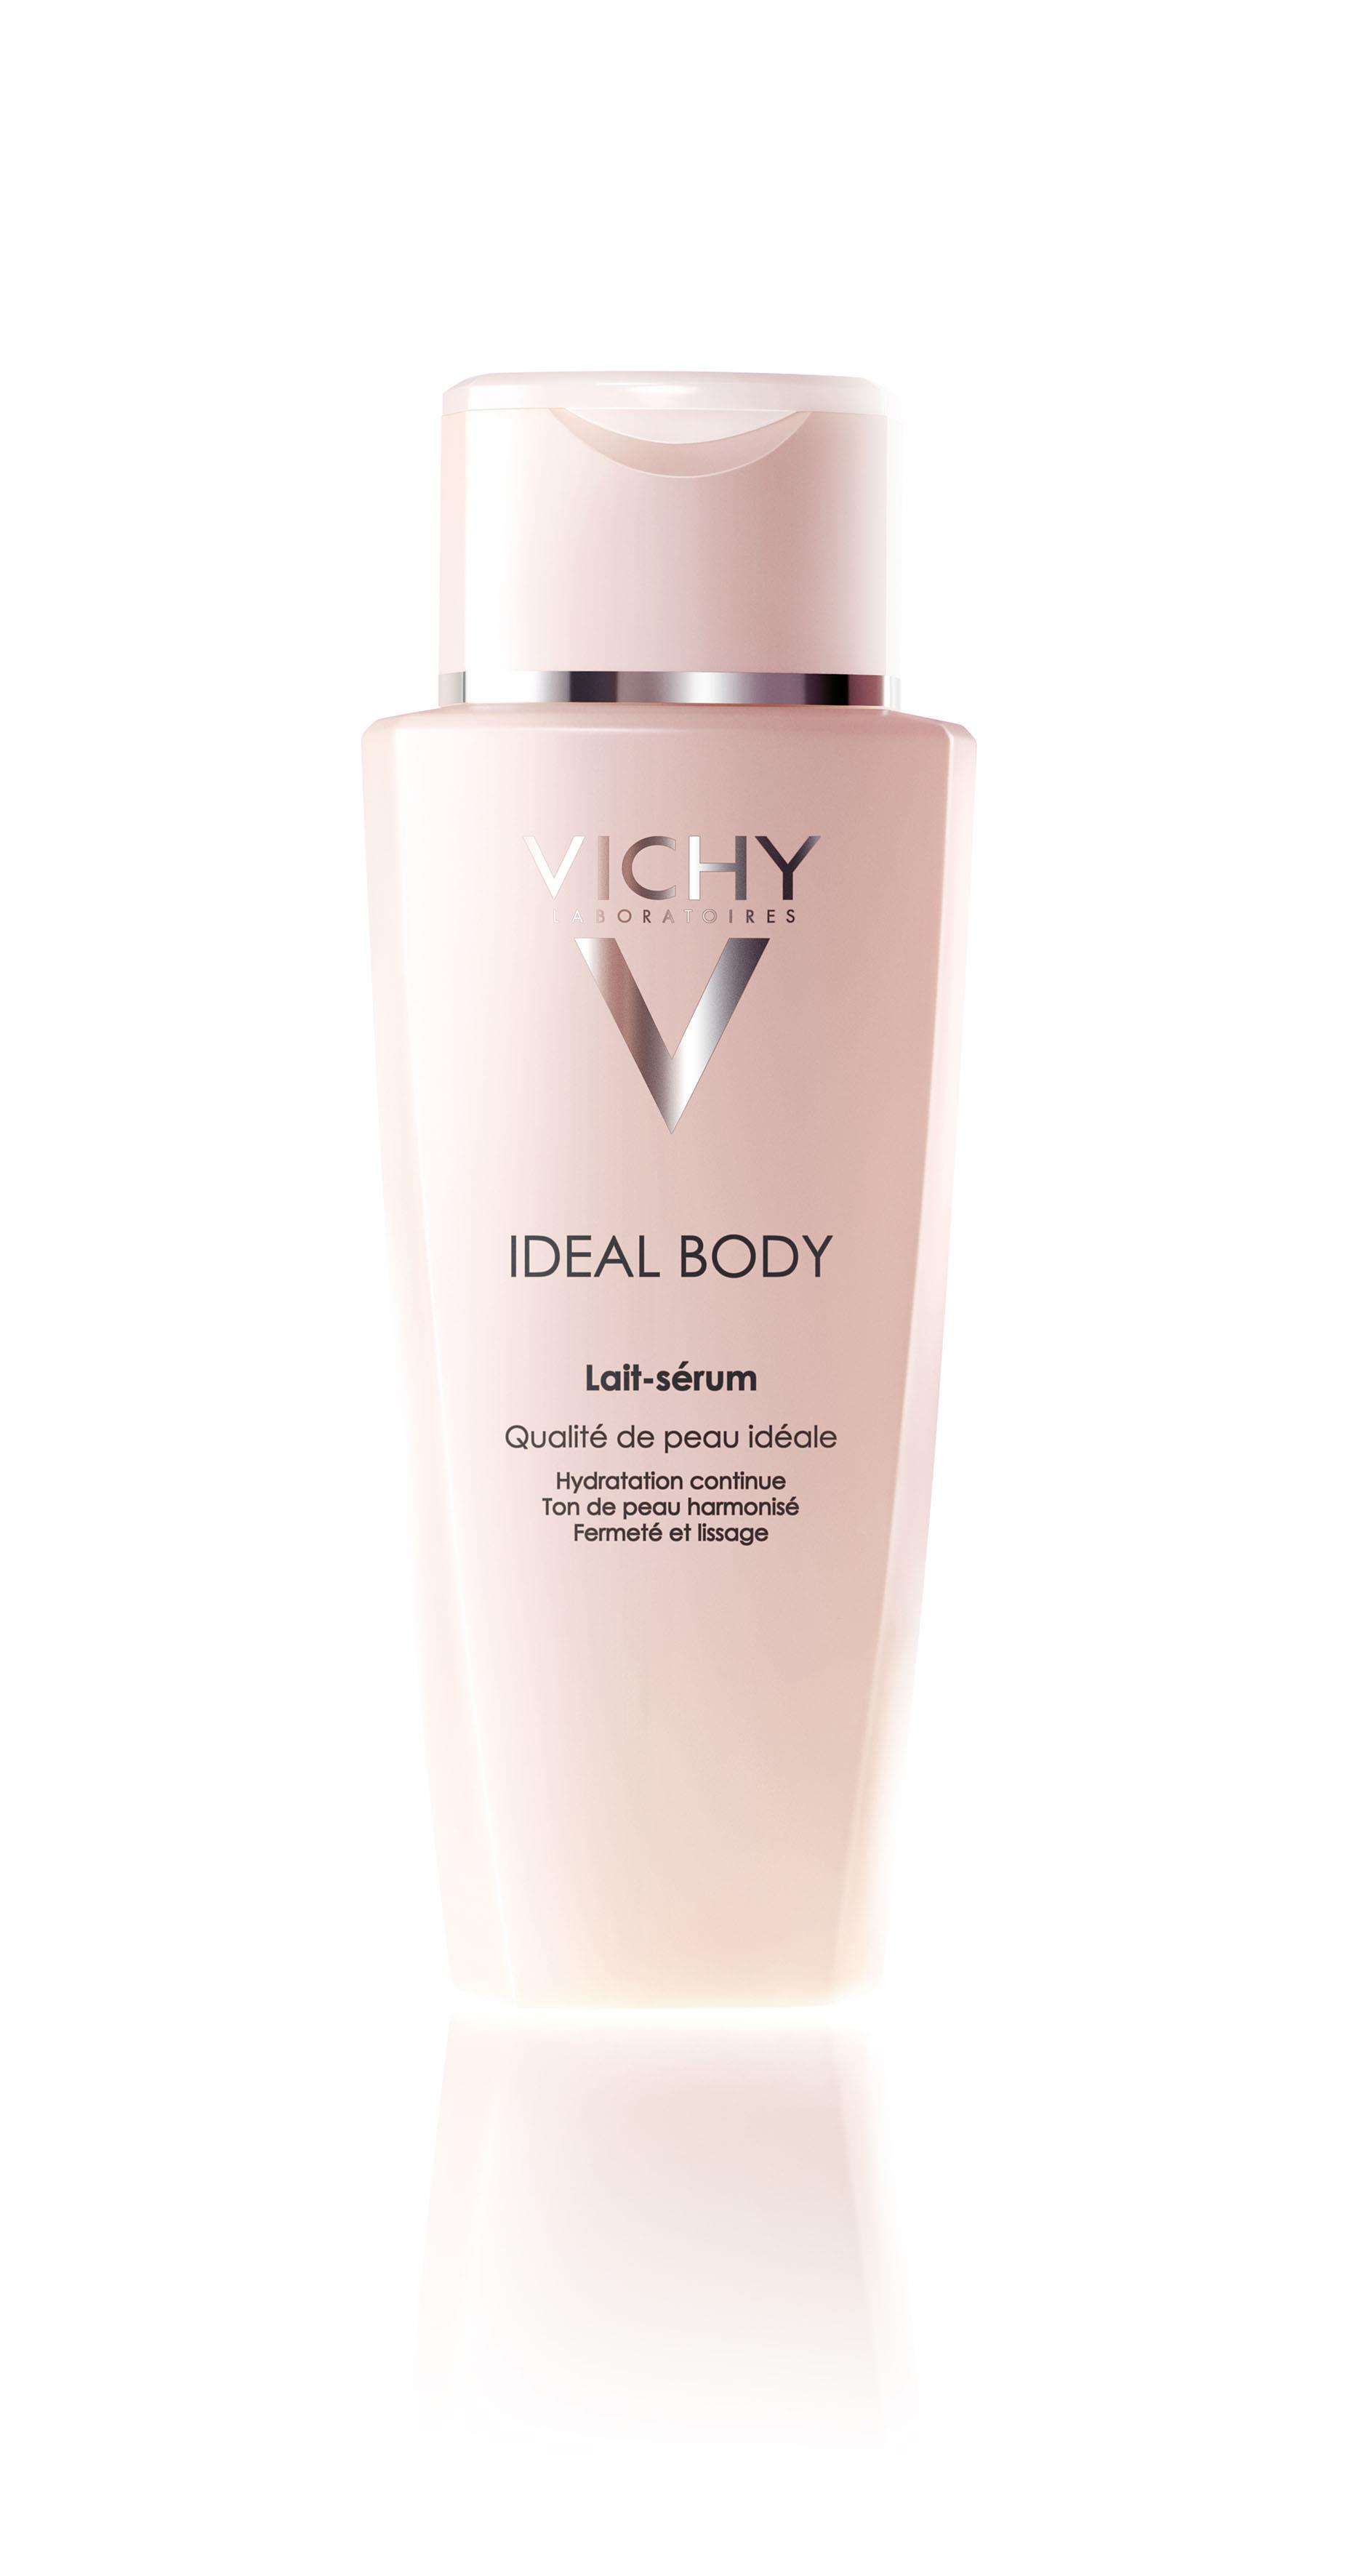 VICHY Ideal Body Milch